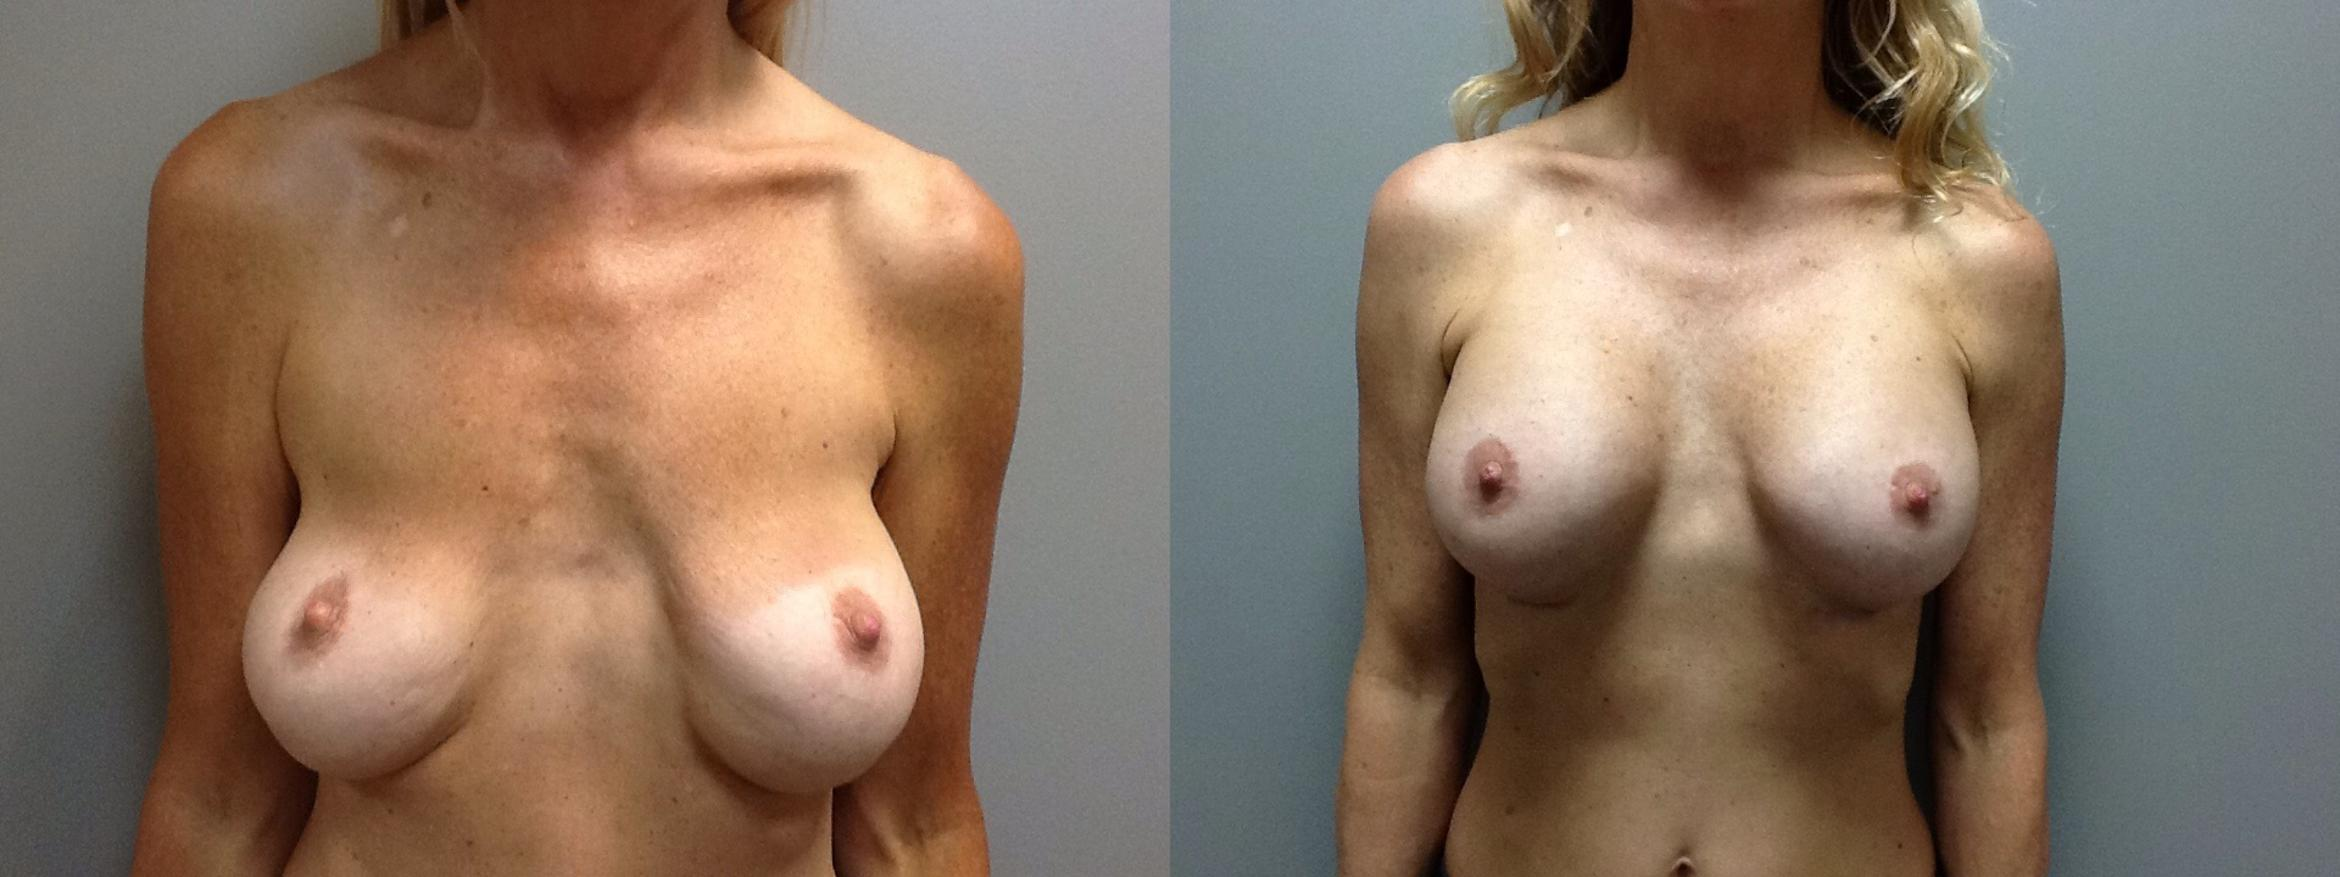 Before After Boob Job Nude